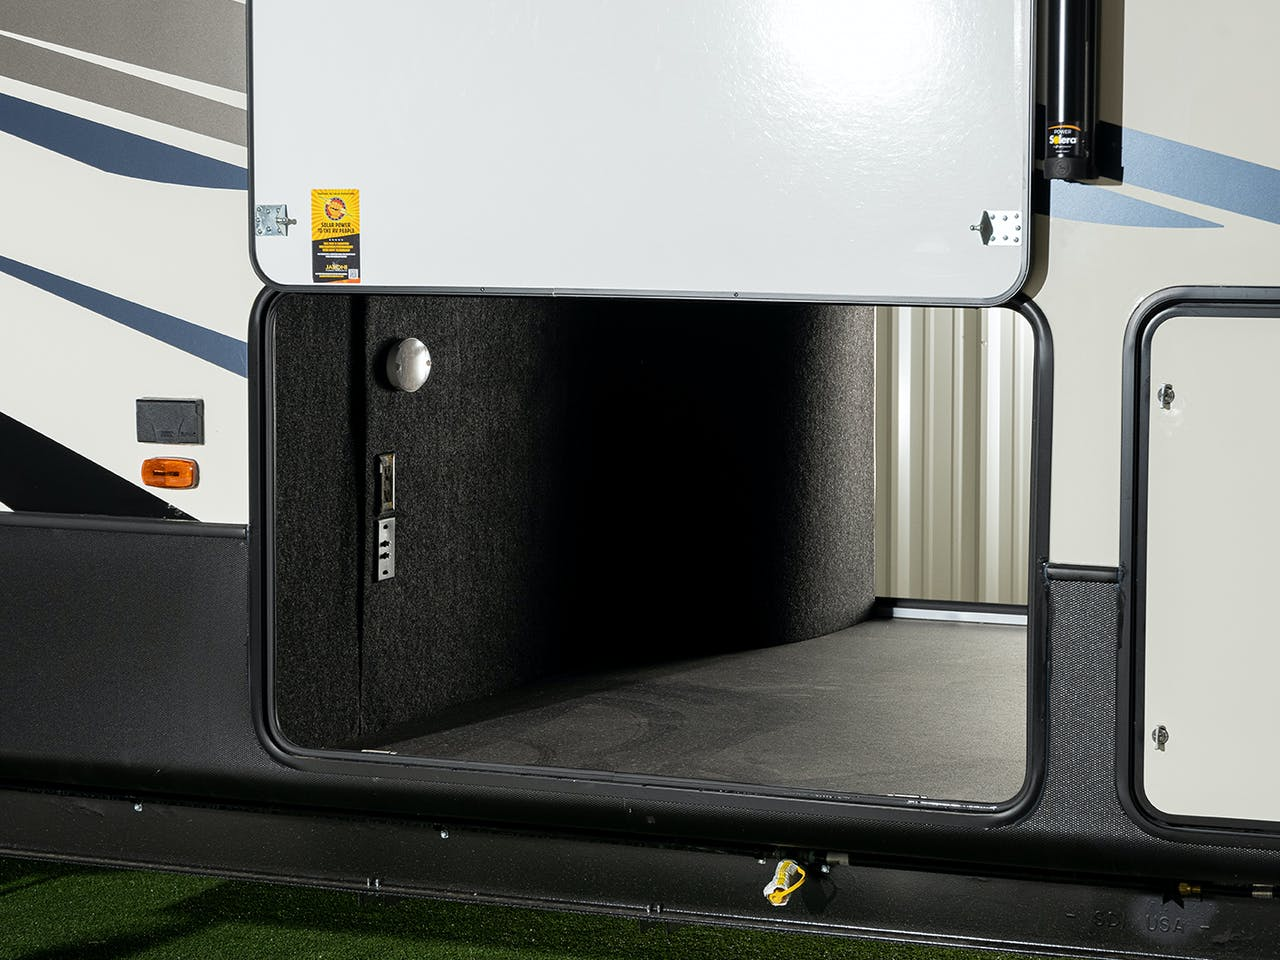 RV storage space